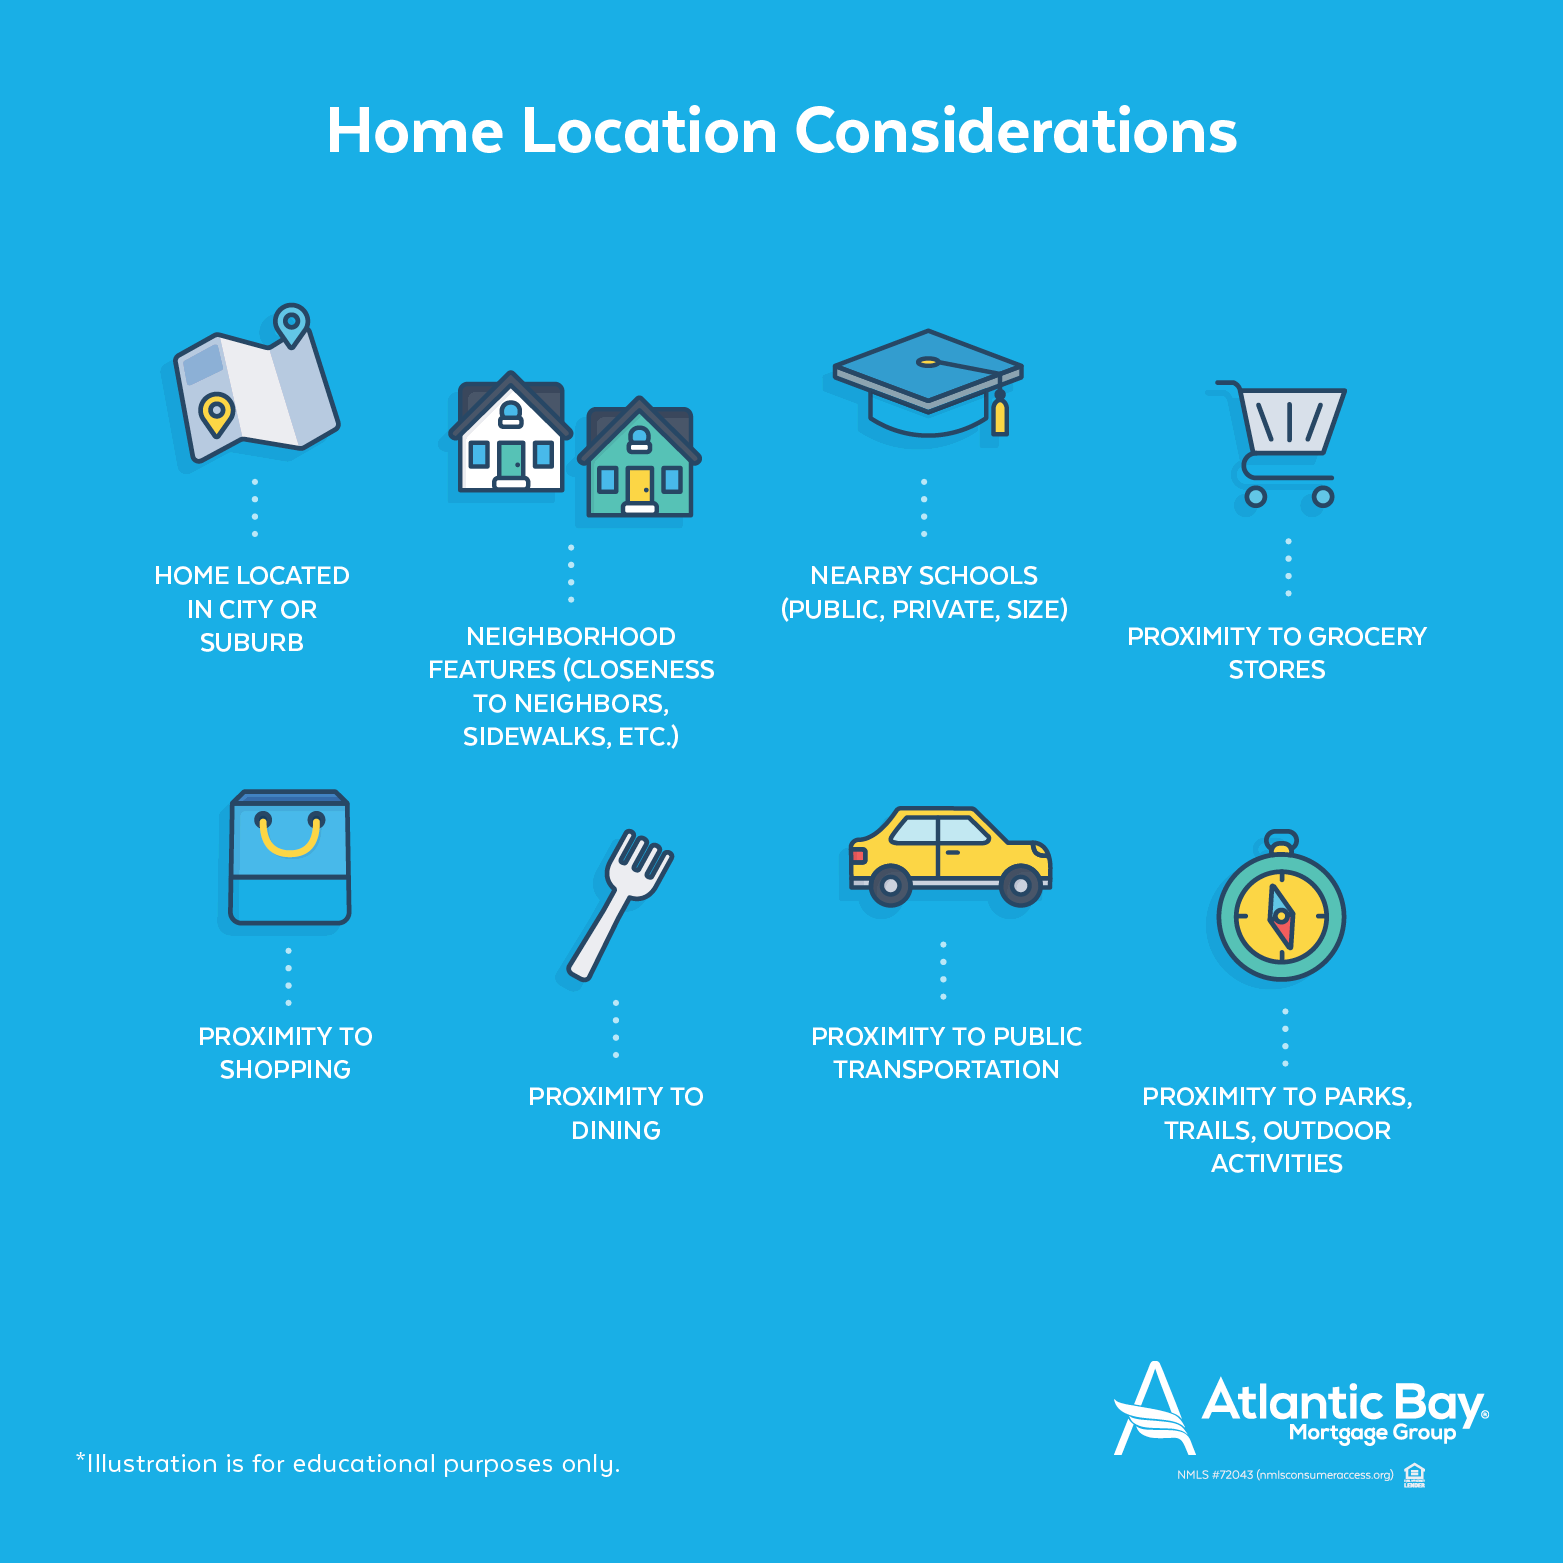 Home Location Considerations